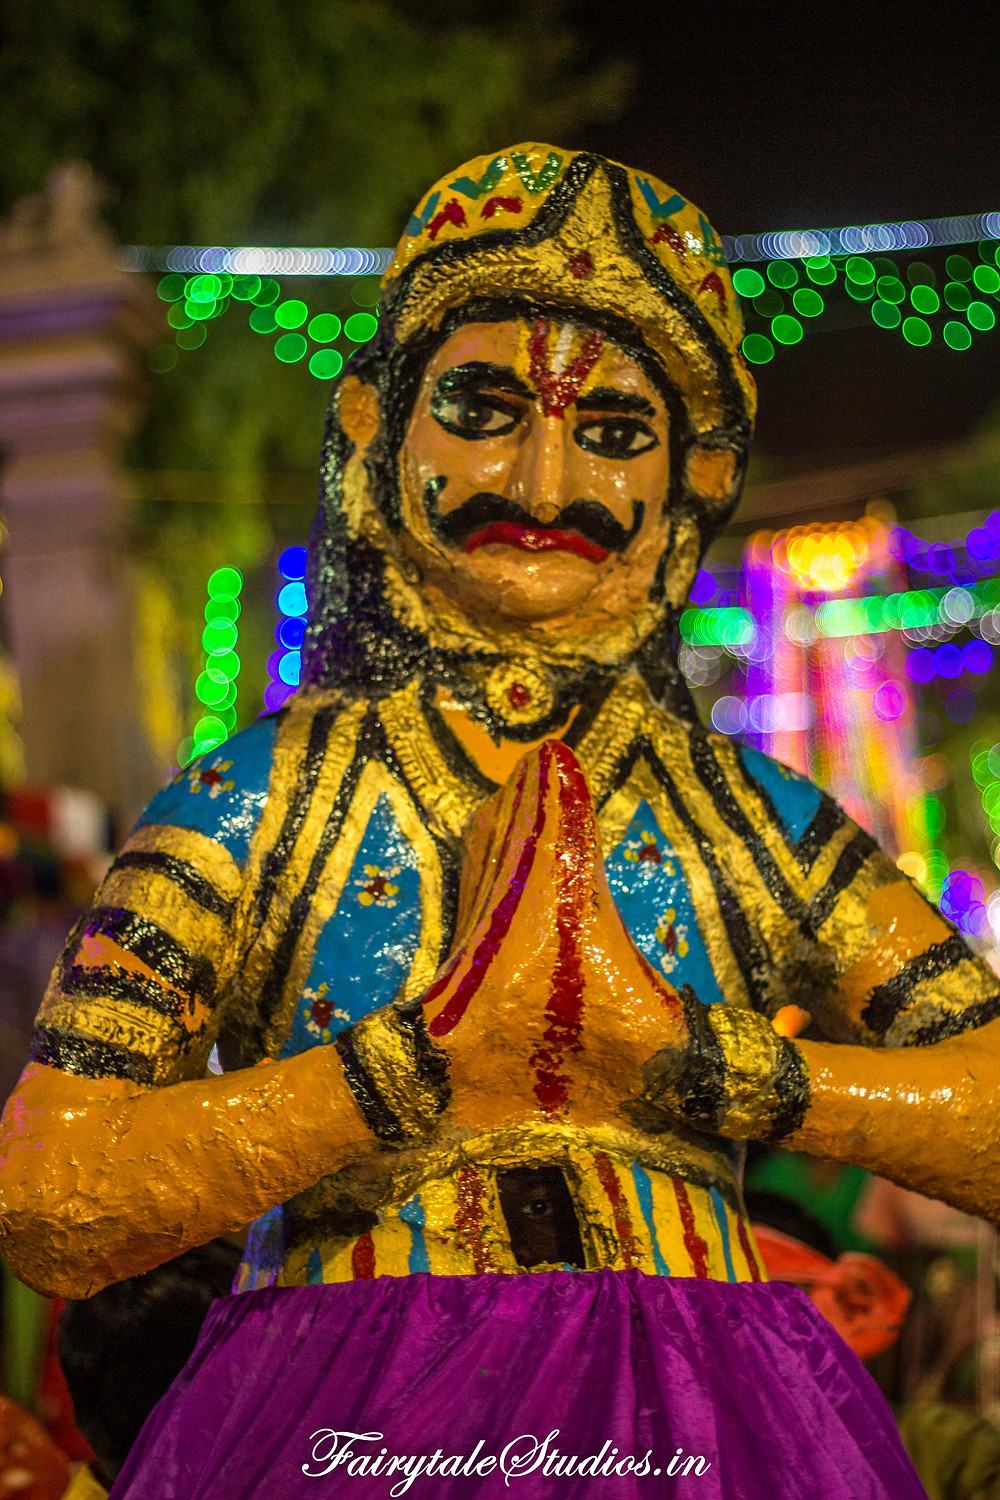 A costumed mascot at the front of the Dussehra carnival greeting people with Namaste.